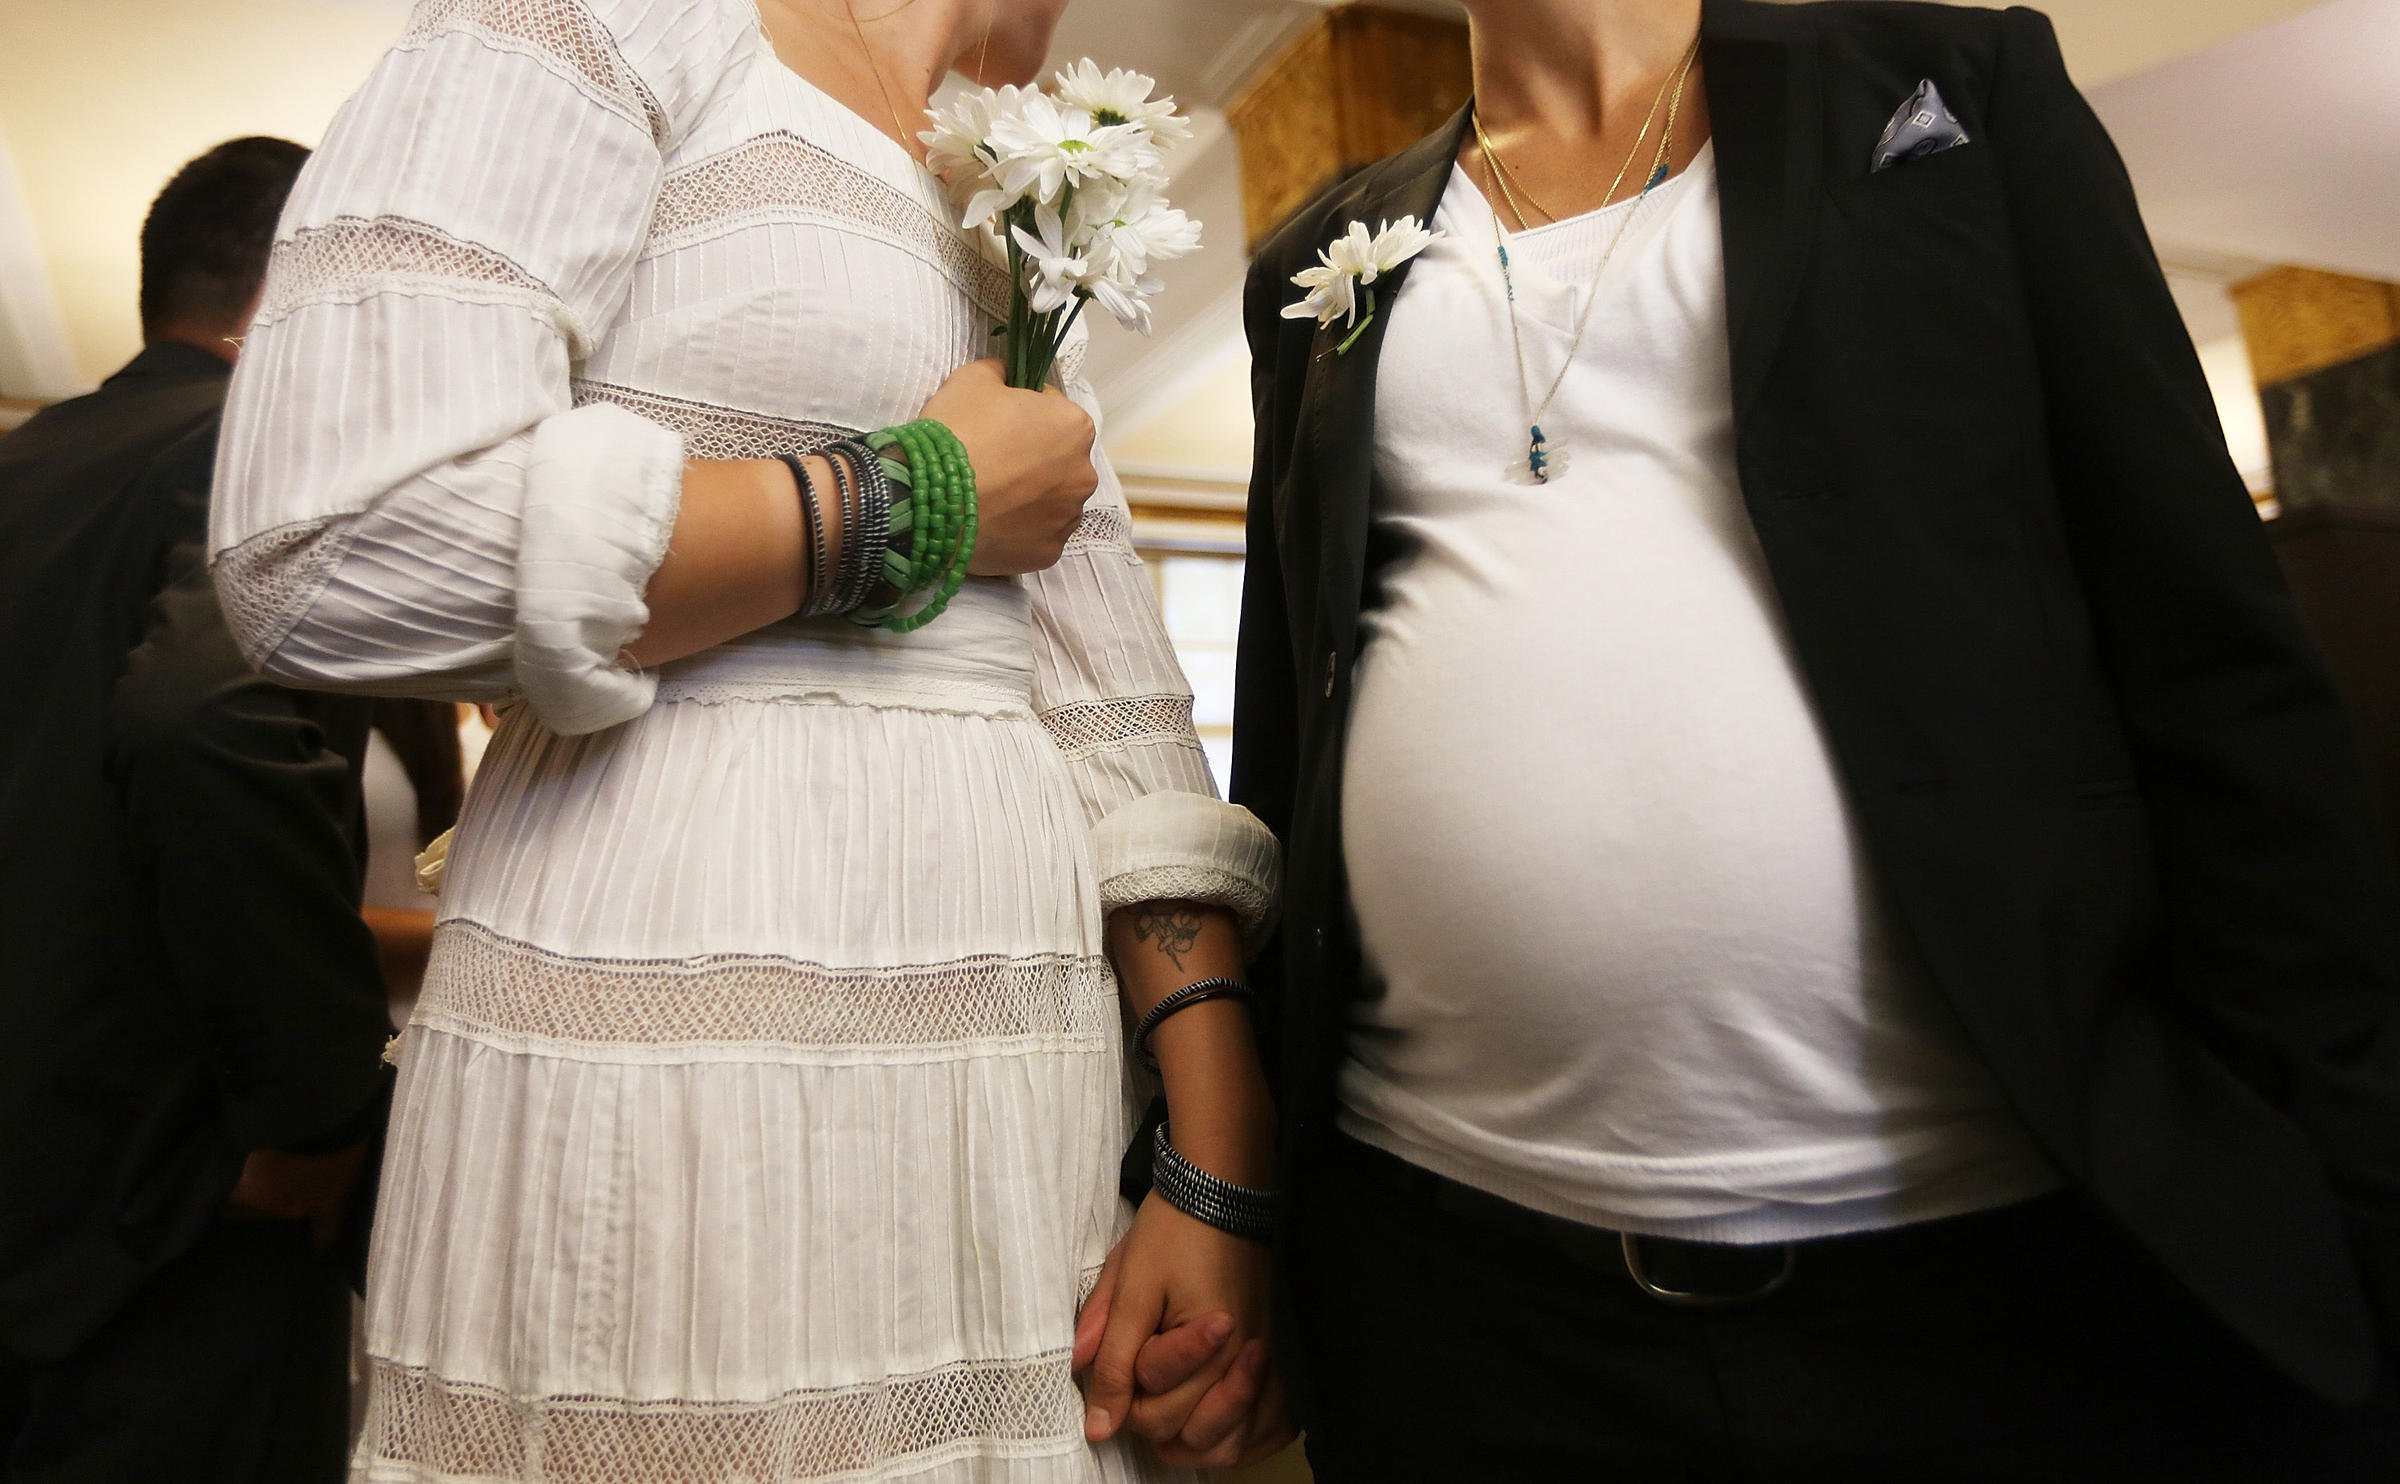 essay wisconsin at tax disadvantage over gay marriage laws wuwm a gay couple gets married days after the supreme court struck down parts of the federal defense of marriage act